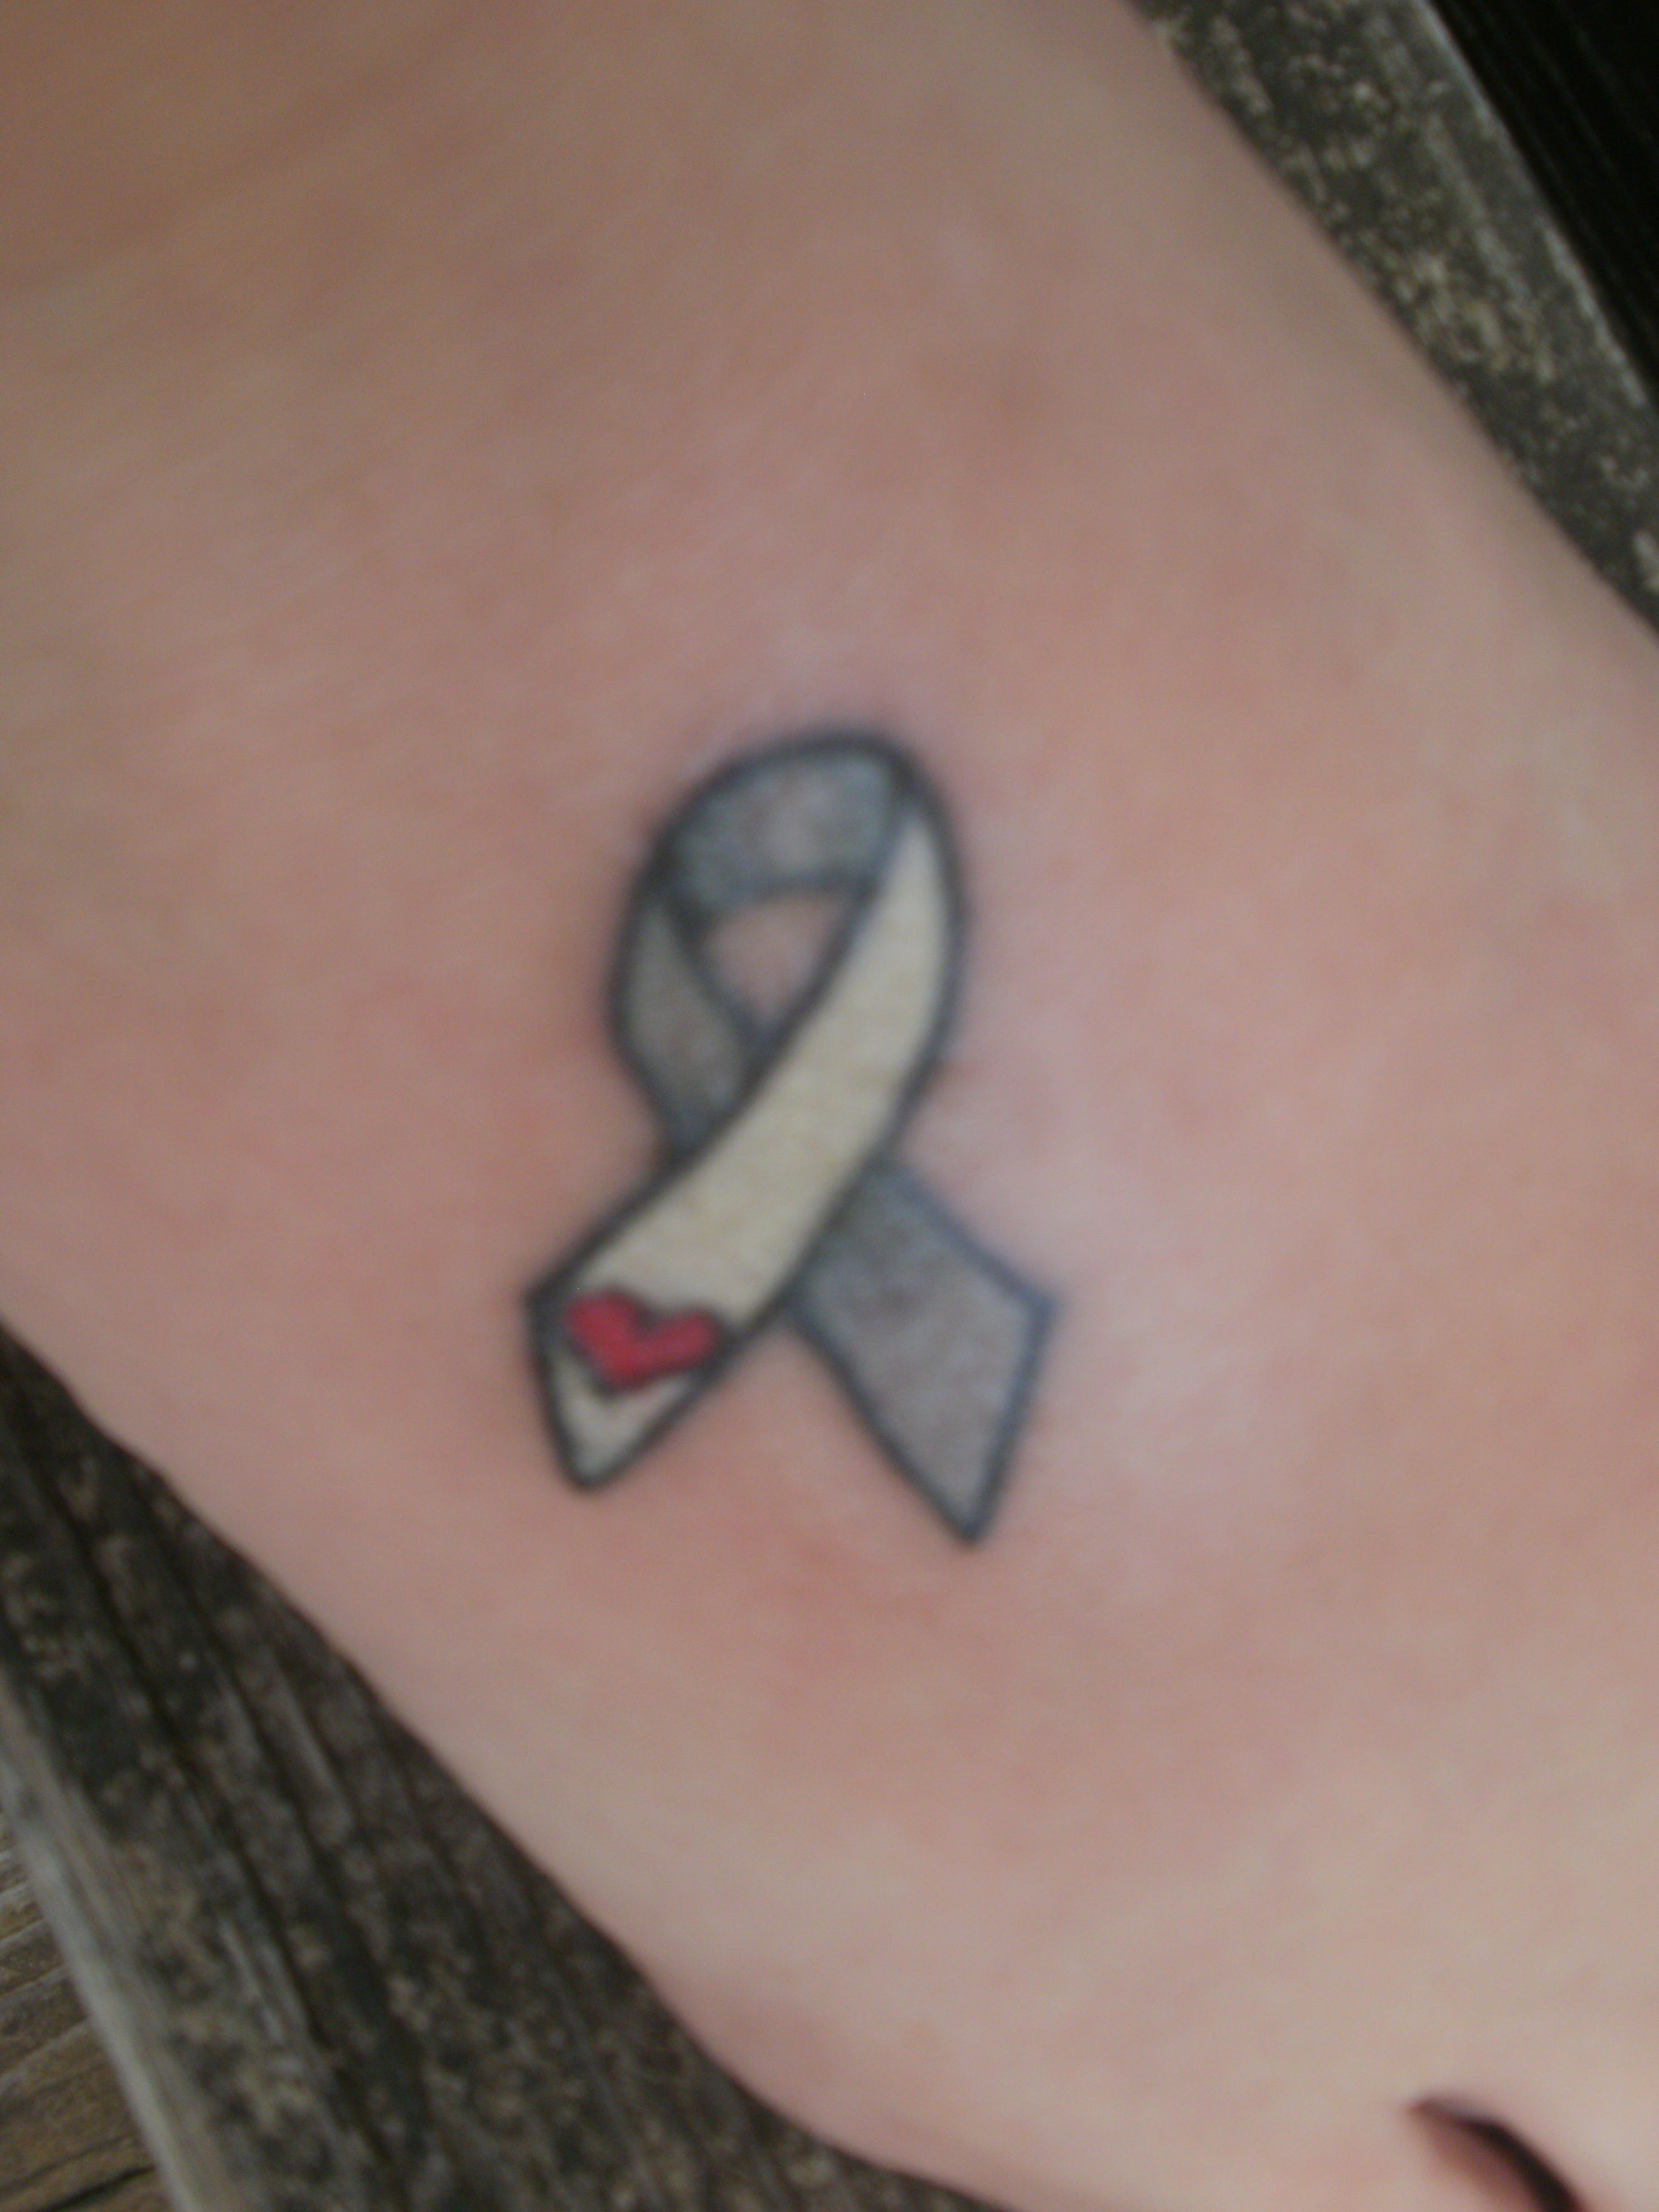 Cancer ribbon tattoo that i got yesterday in support of my